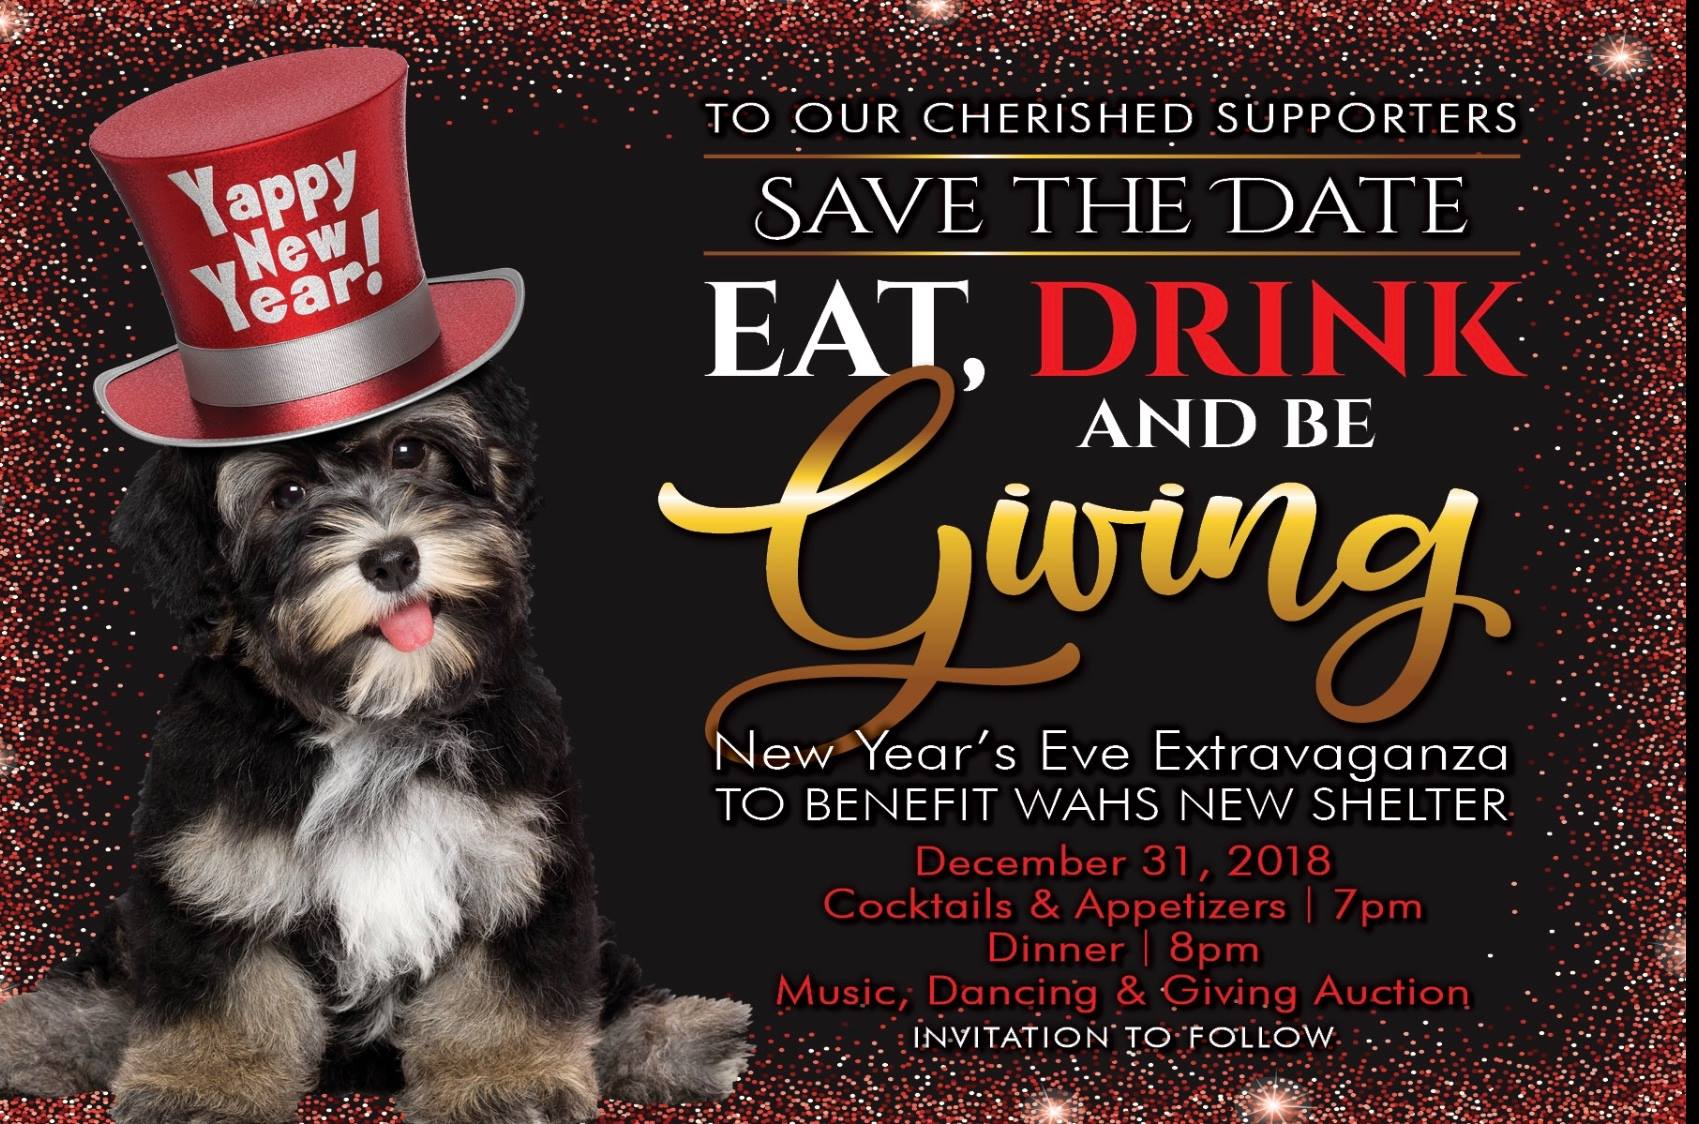 WAHS Building Campaign New Year's Eve Extravaganza